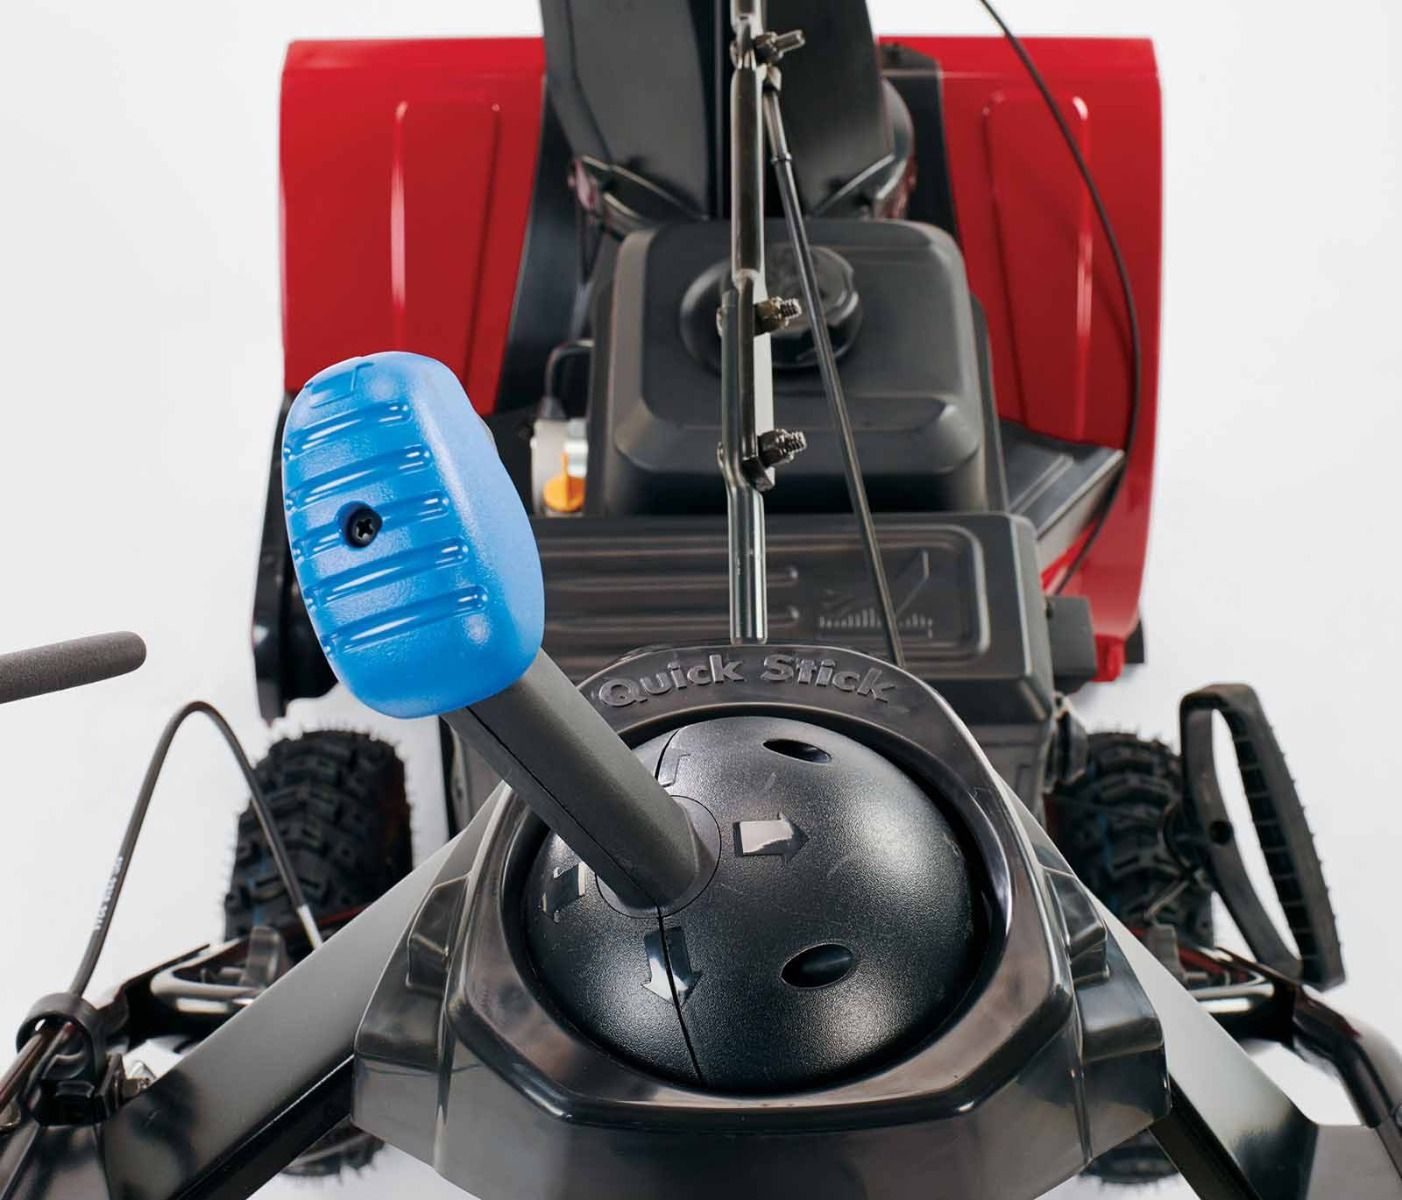 Quick Stick® Chute Control - Innovative joystick control allows you to change chute direction and angle quickly and easily, on the go